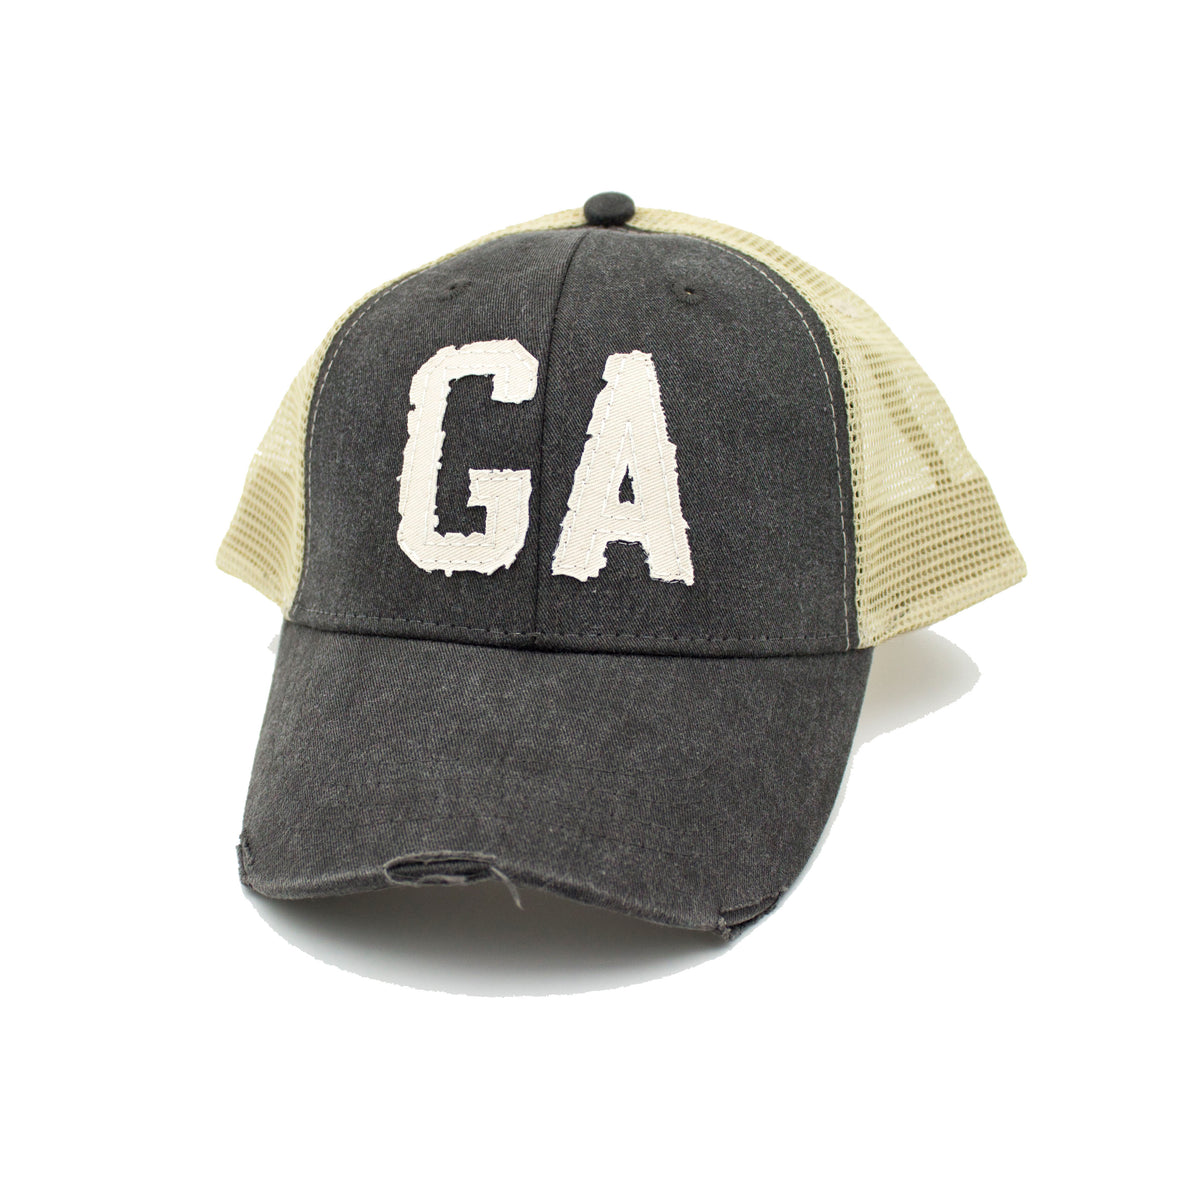 GA Trucker Hat - Black